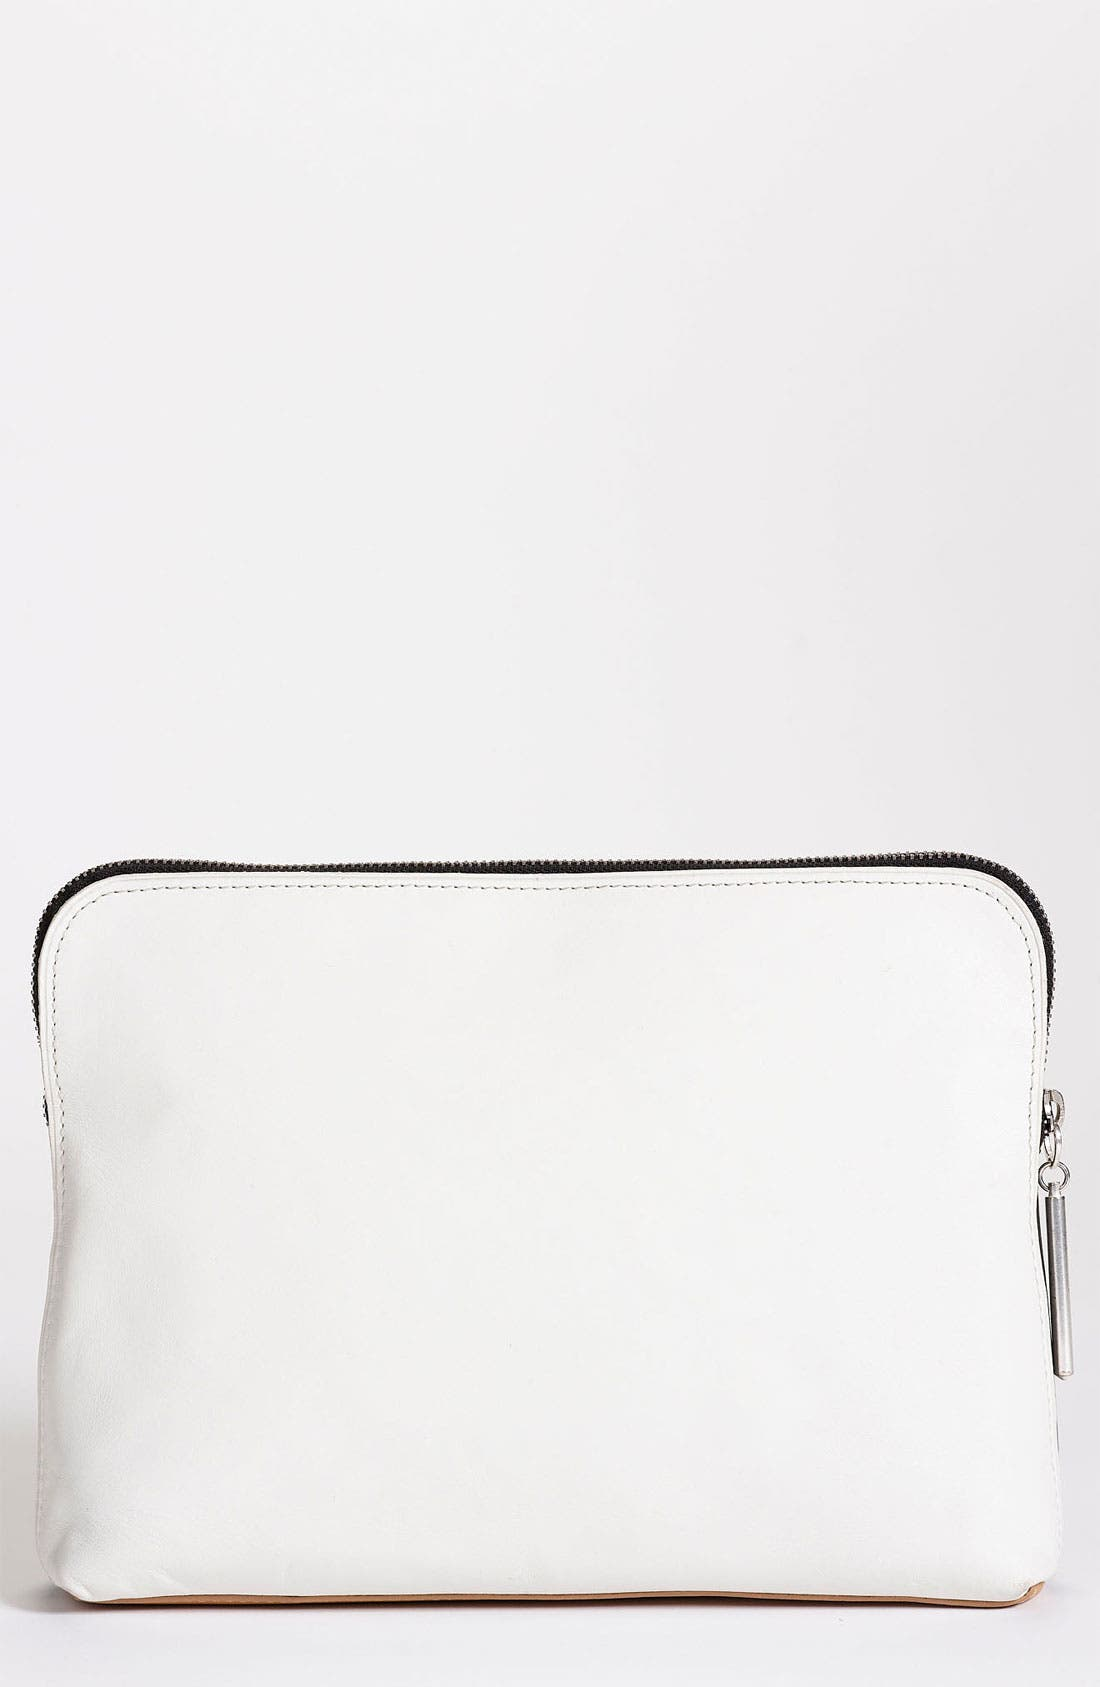 Main Image - 3.1 Phillip Lim '31 Minute' Leather Bag